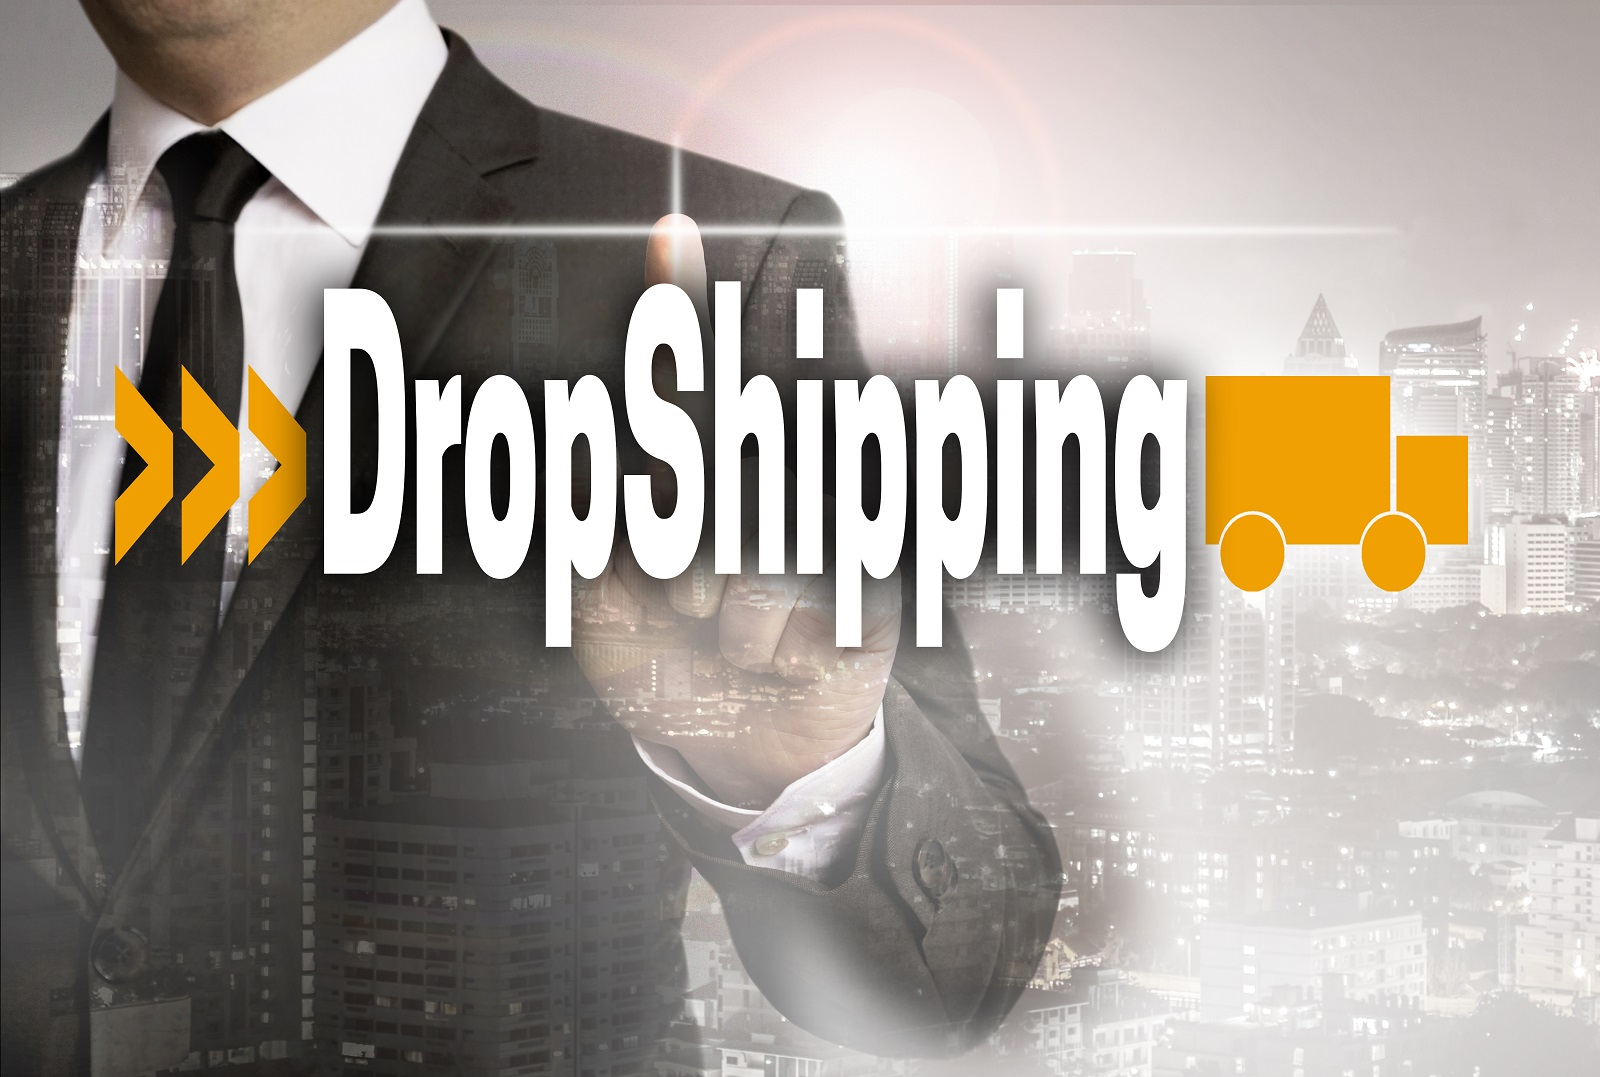 Dropshipping | Top 5 Places To Find An Online Business For Sale Today